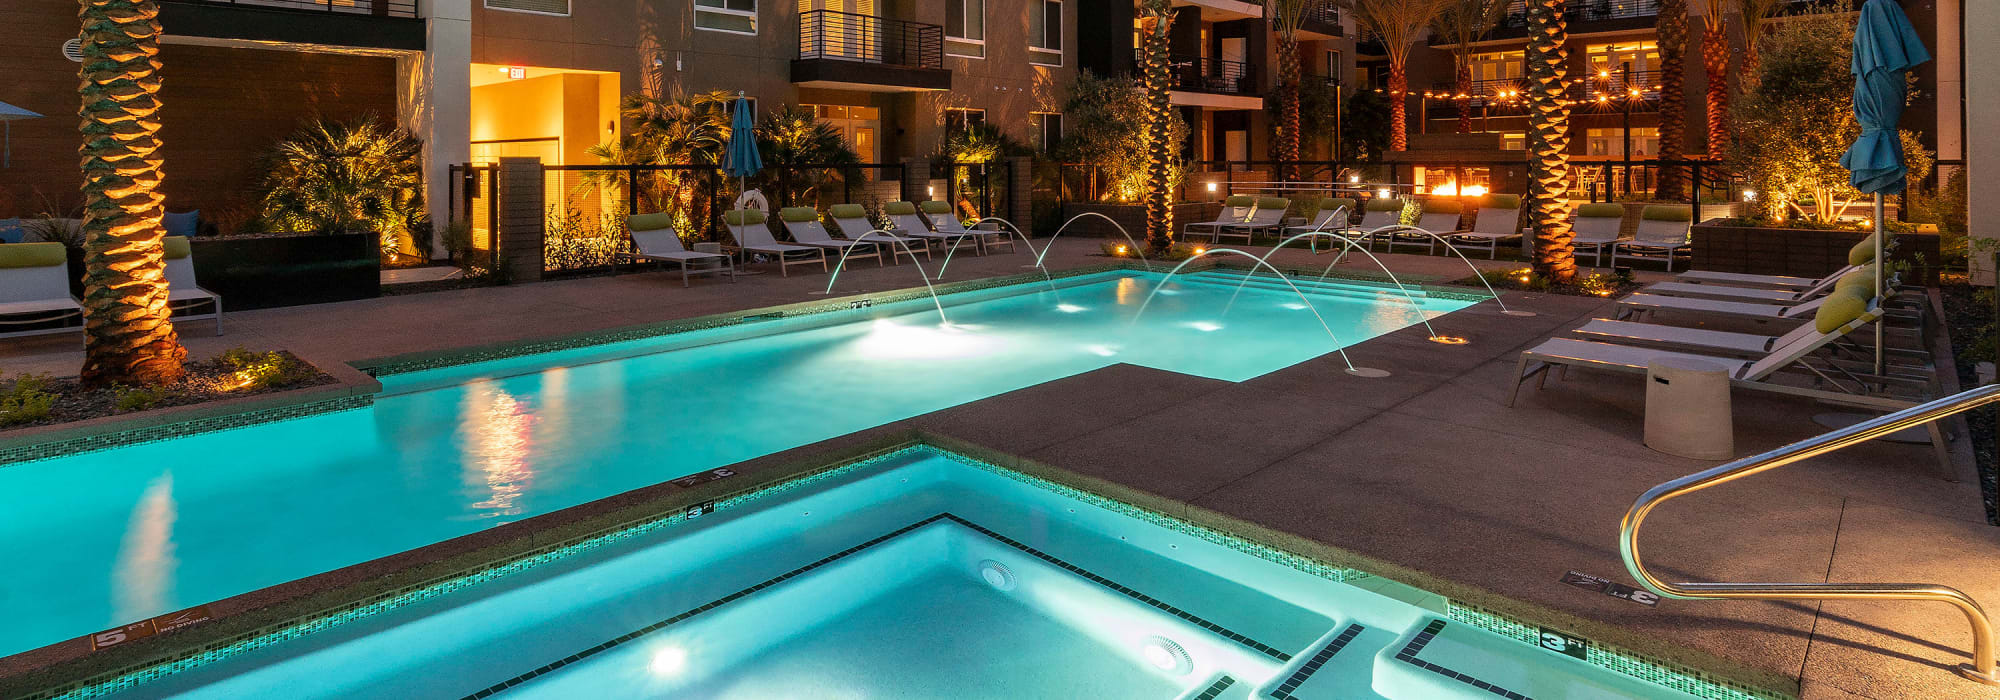 Swimming pool area in the evening at Carter in Scottsdale, Arizona